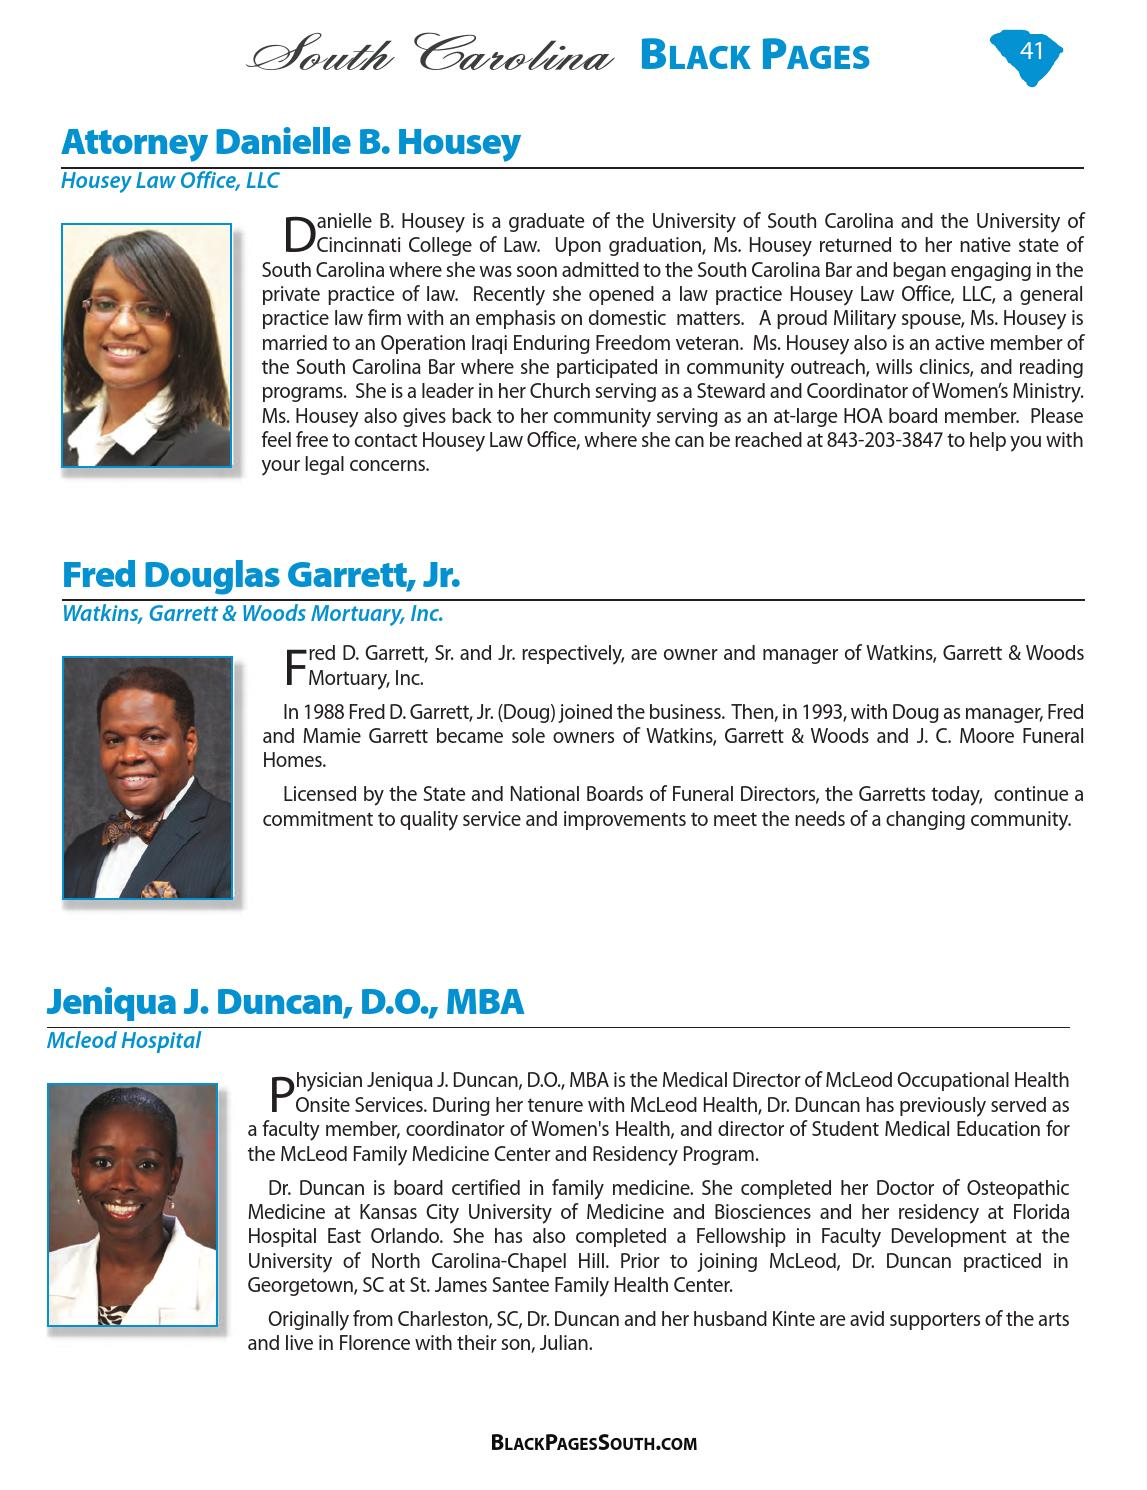 2015 South Carolina Black Pages by Black Pages USA - issuu